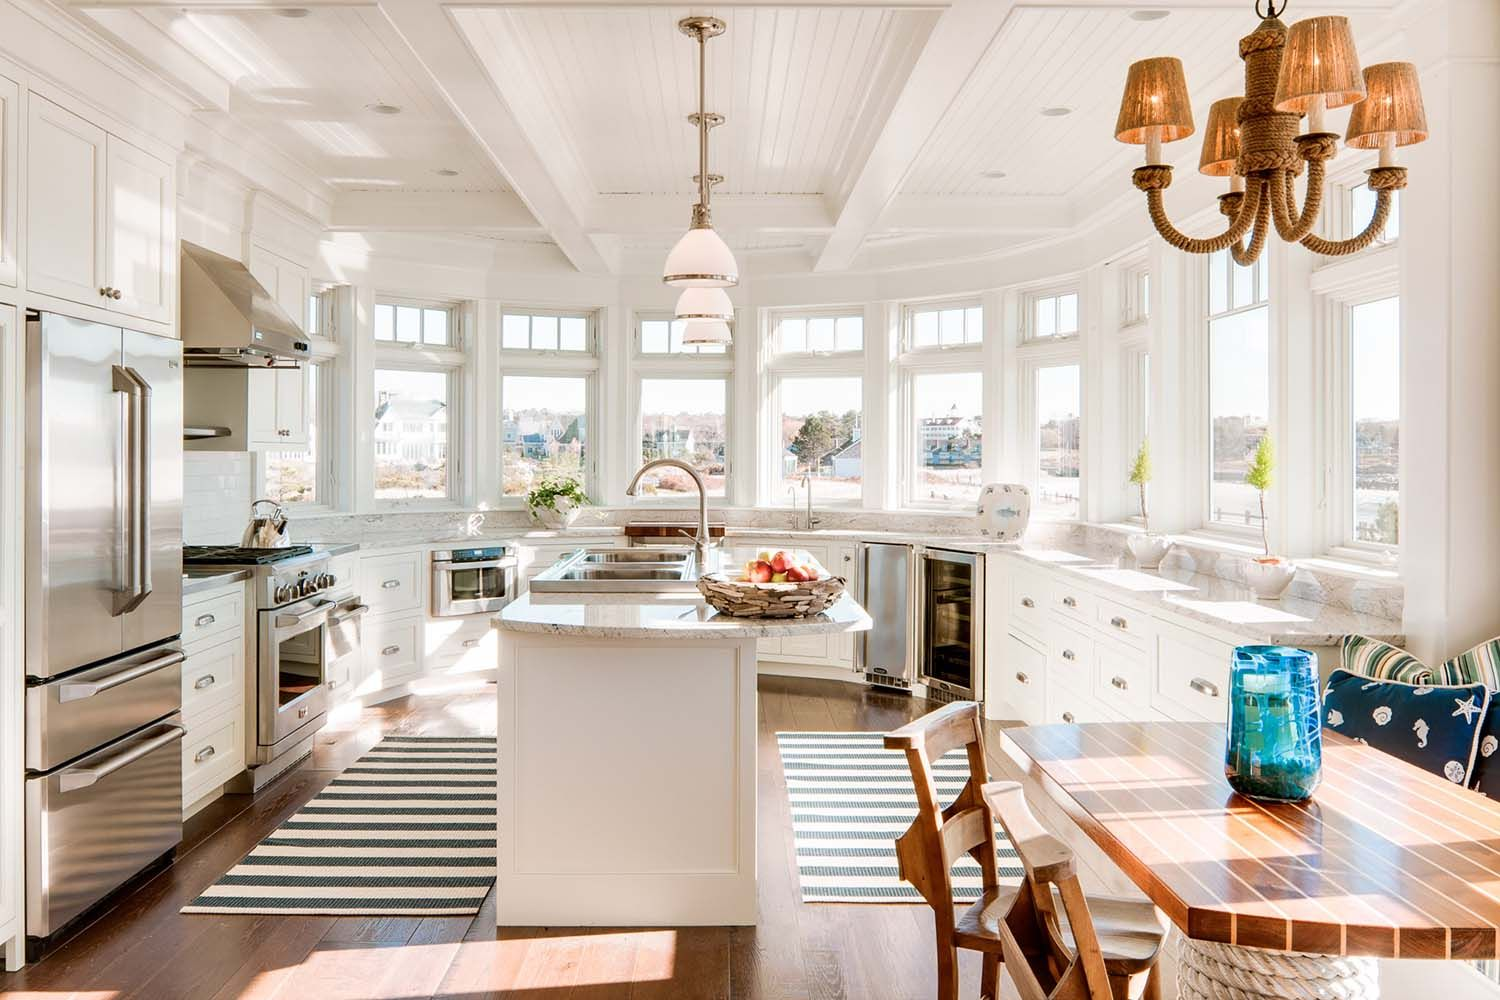 Dreamy Seaside Home In Maine With New England Style Architecture Home House Dream House